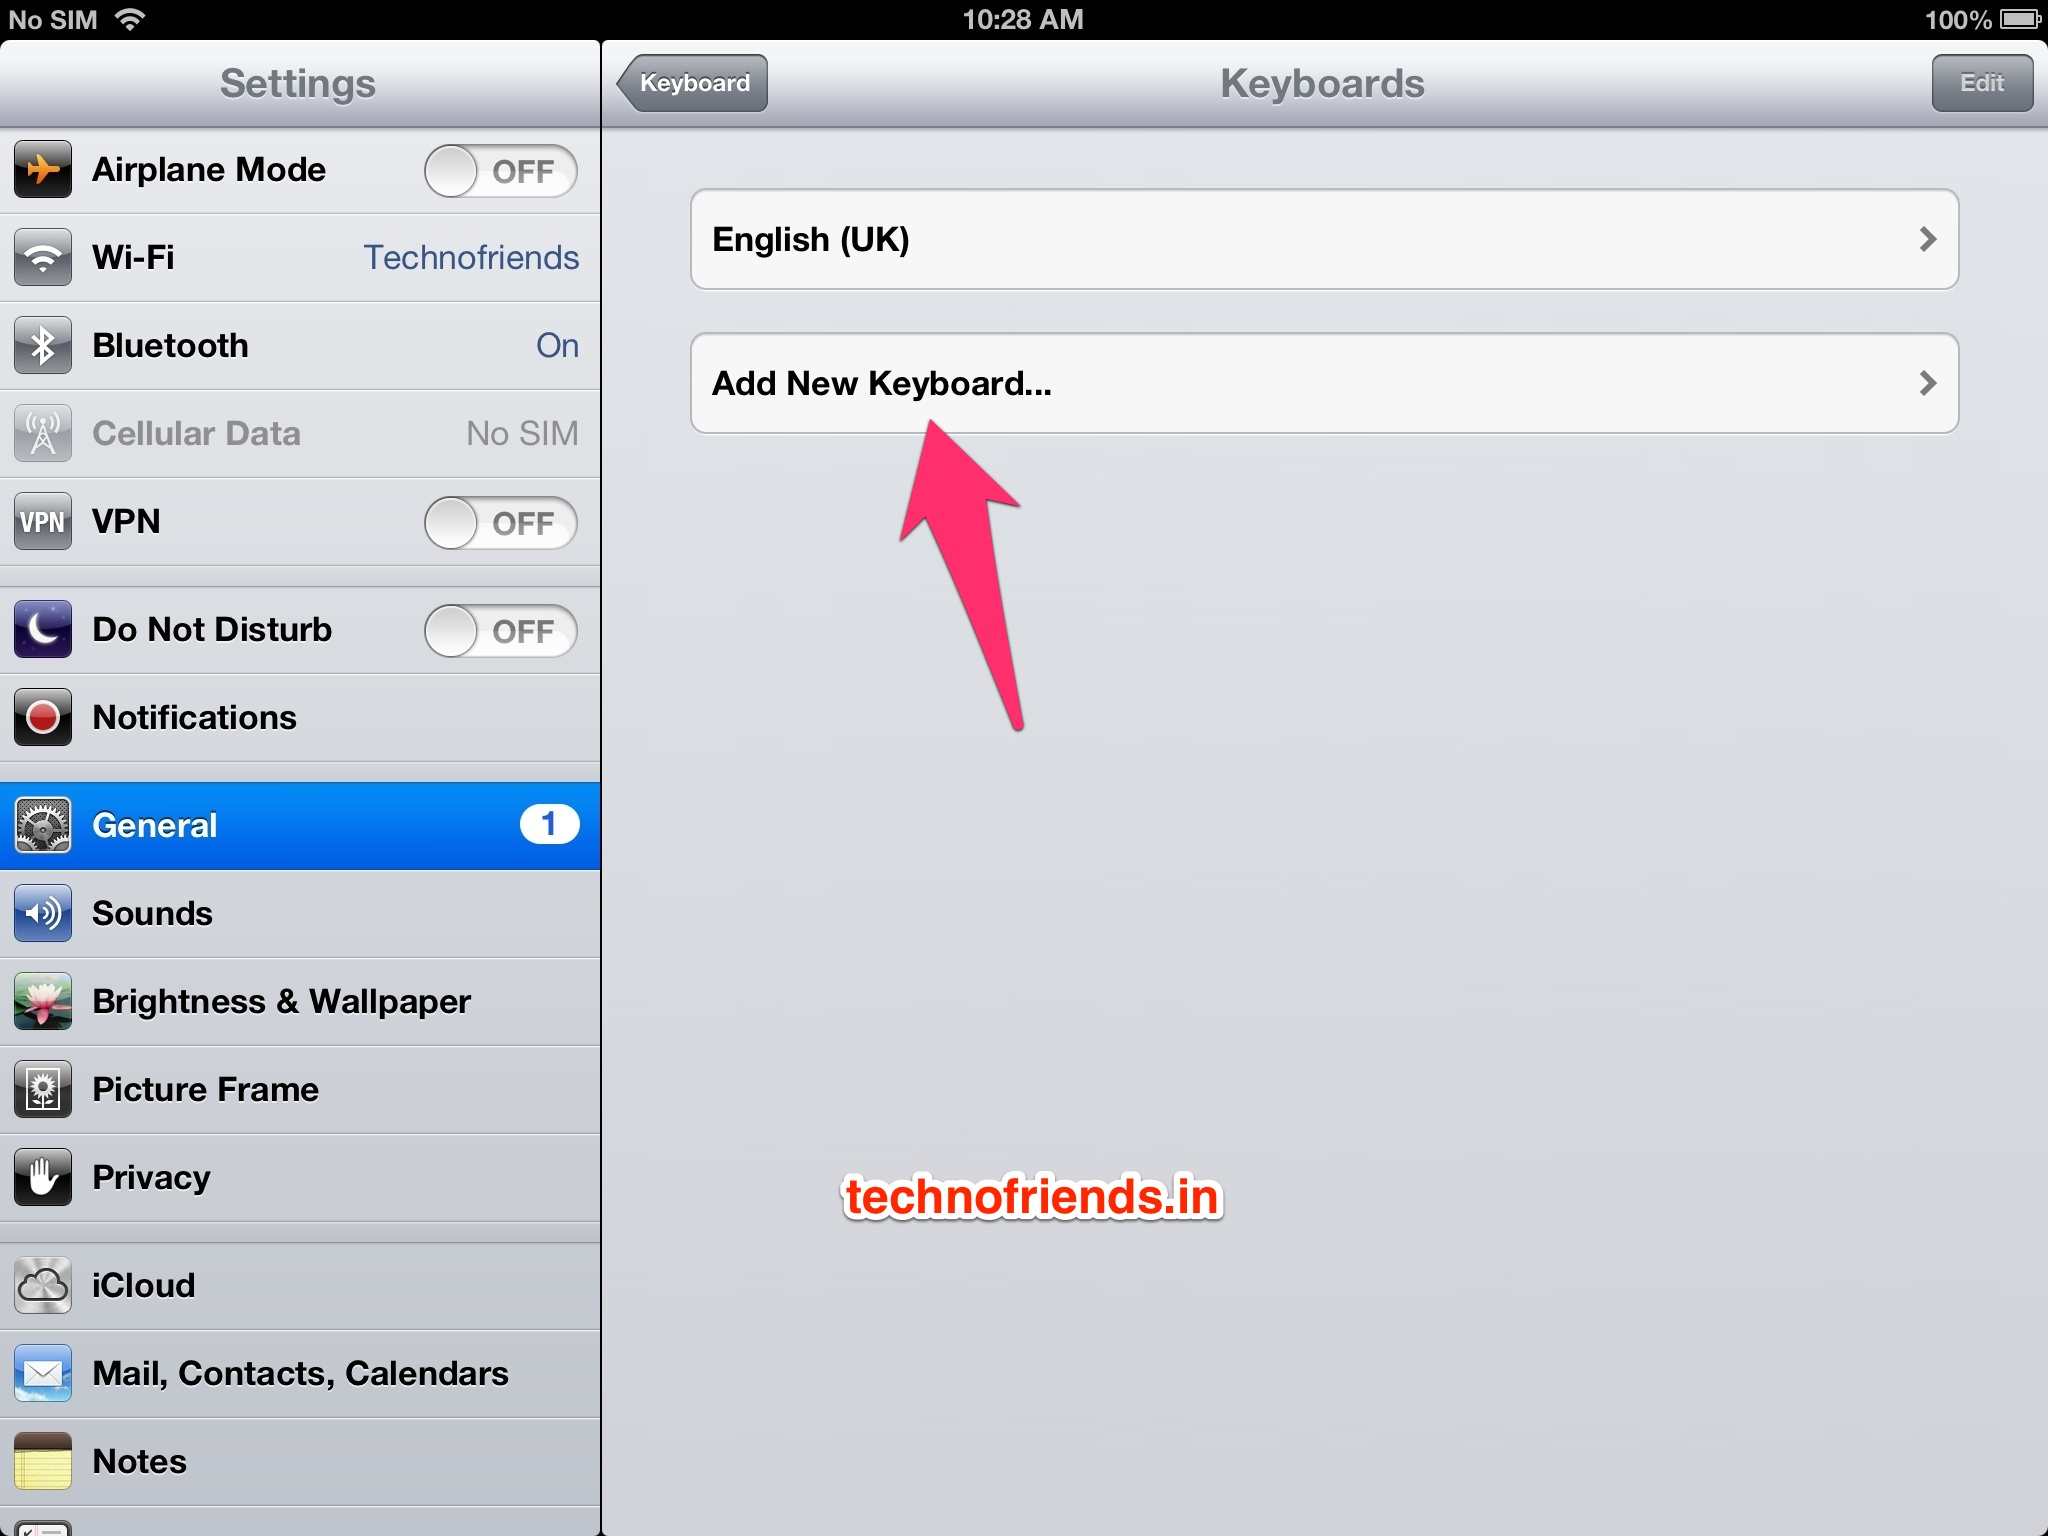 Step by Step Instructions on adding an emoji (emoticon) keyboard to your iOS Device